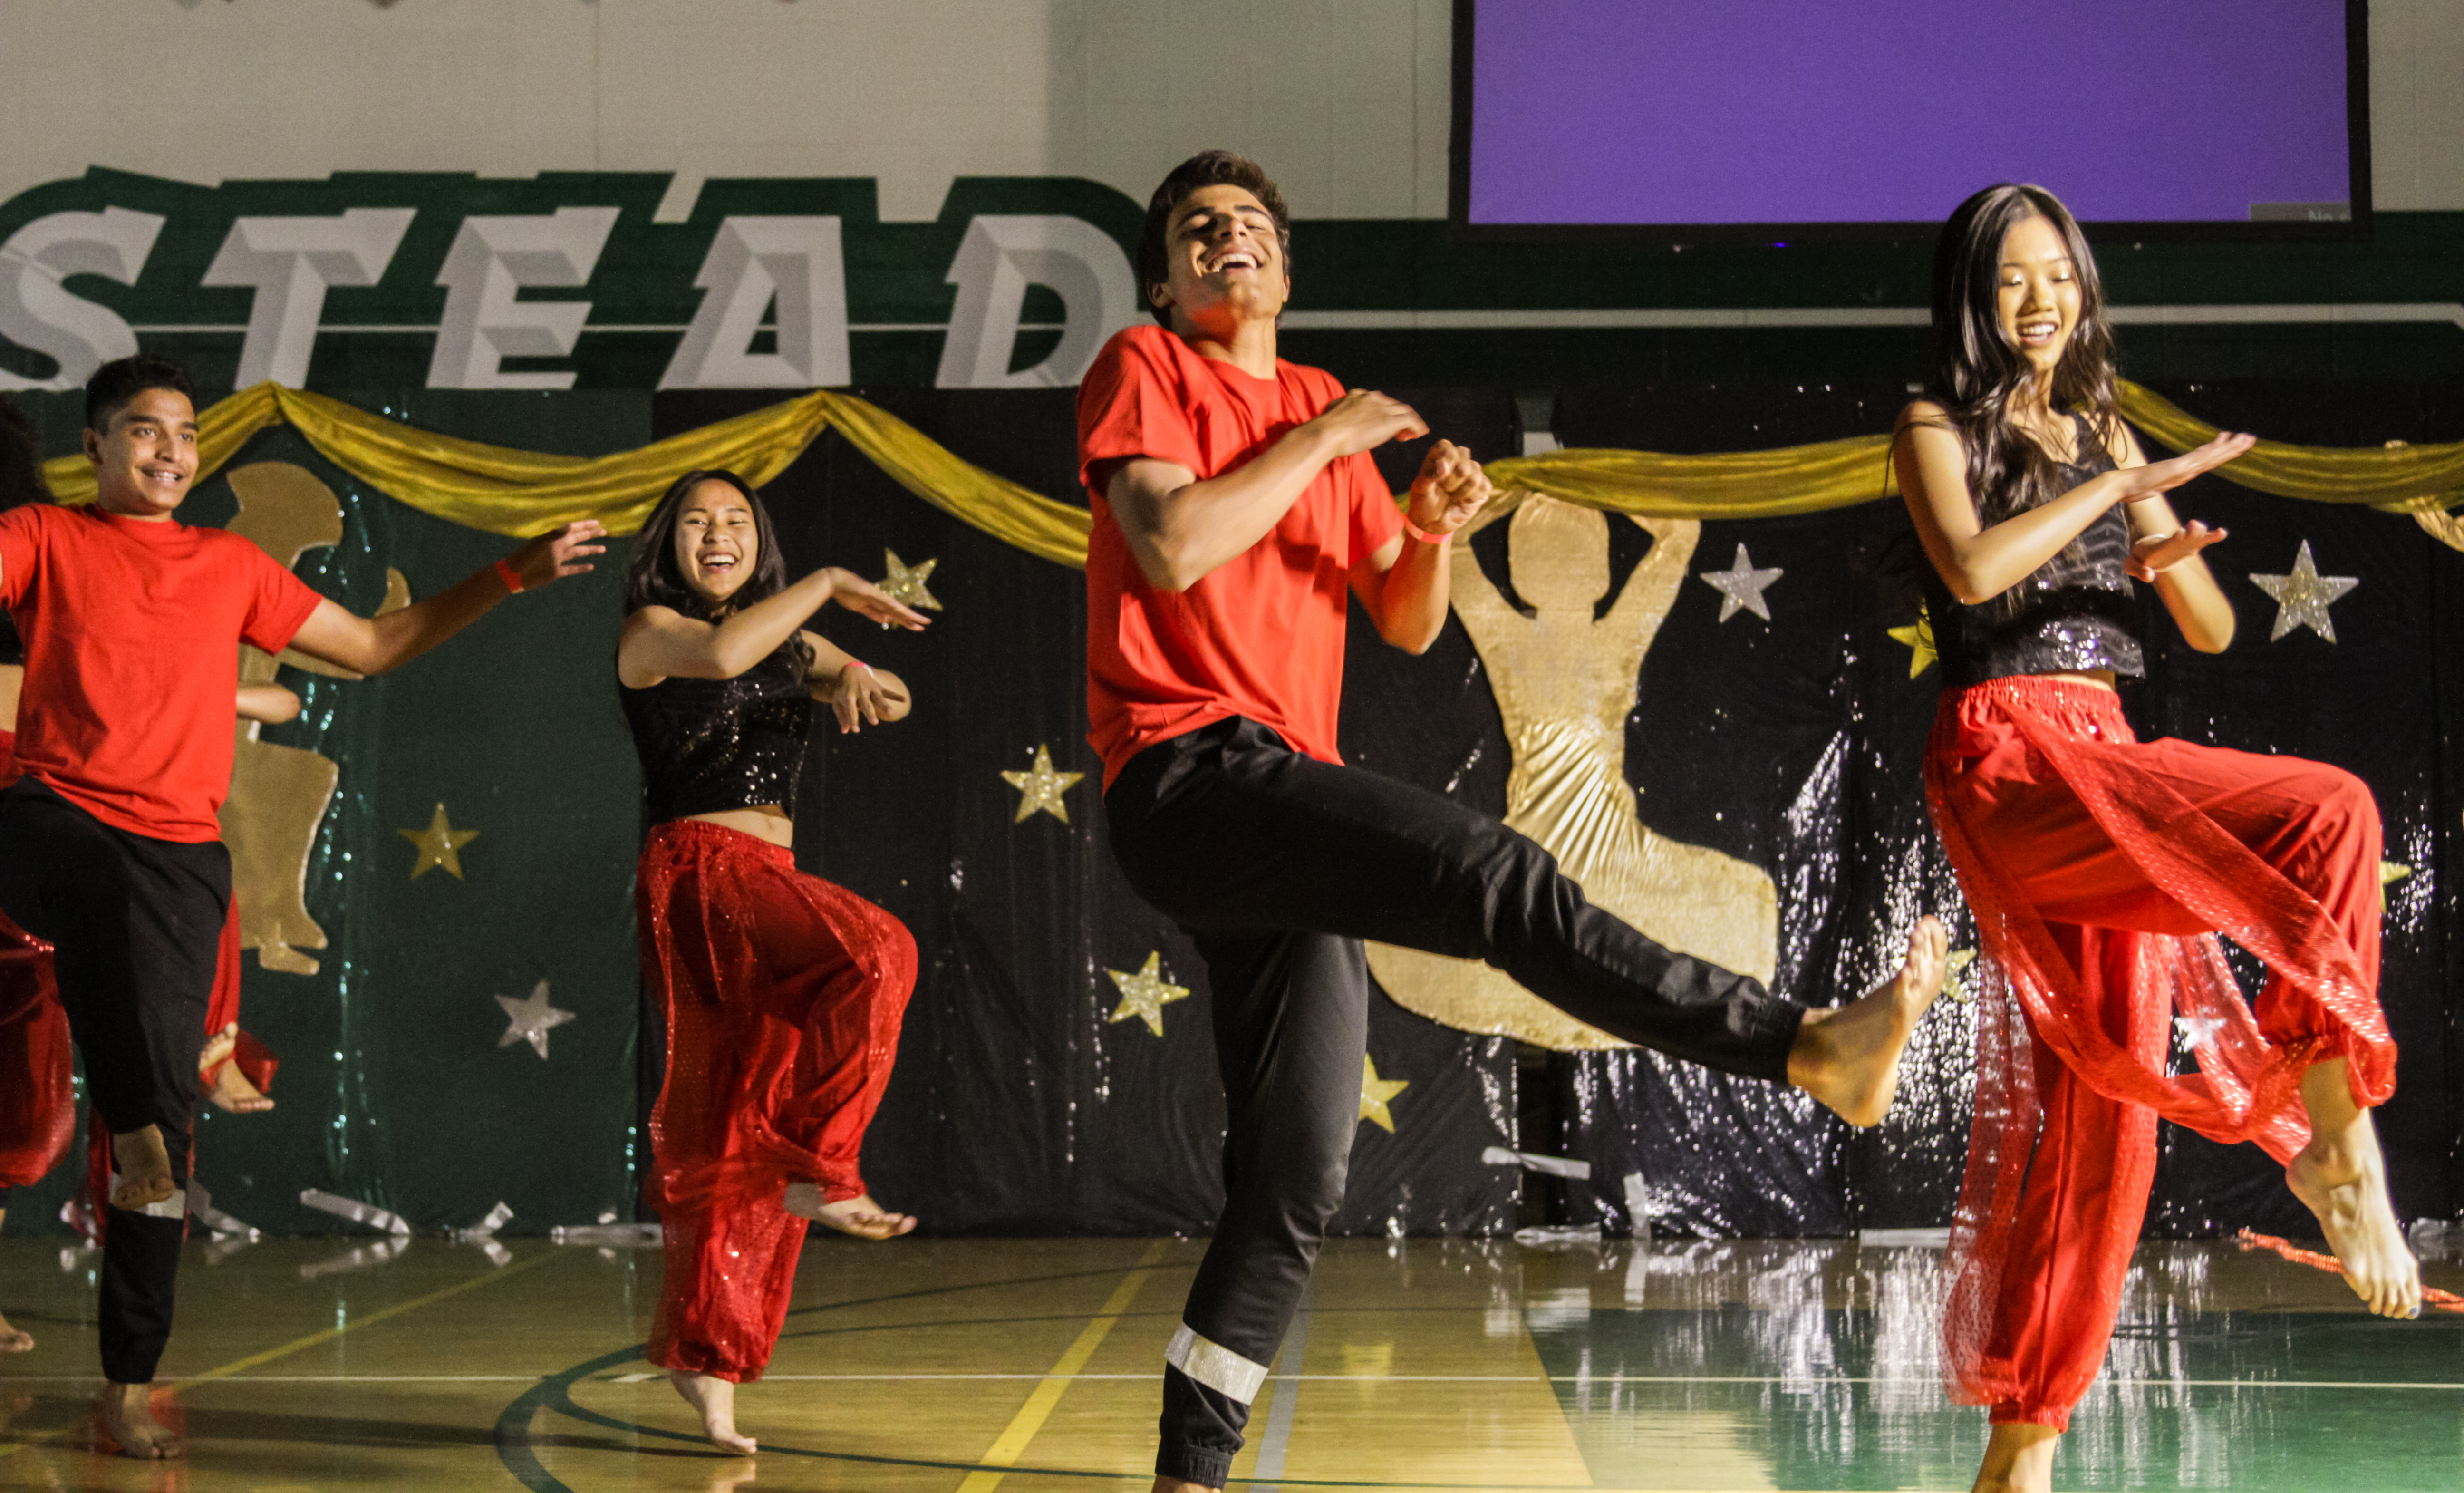 Sapnay gives Indopak a chance to provide money for charities and spread awareness of Indian and Pakistani culture through dance. Photo courtesy of Nikhil Kulkarni.